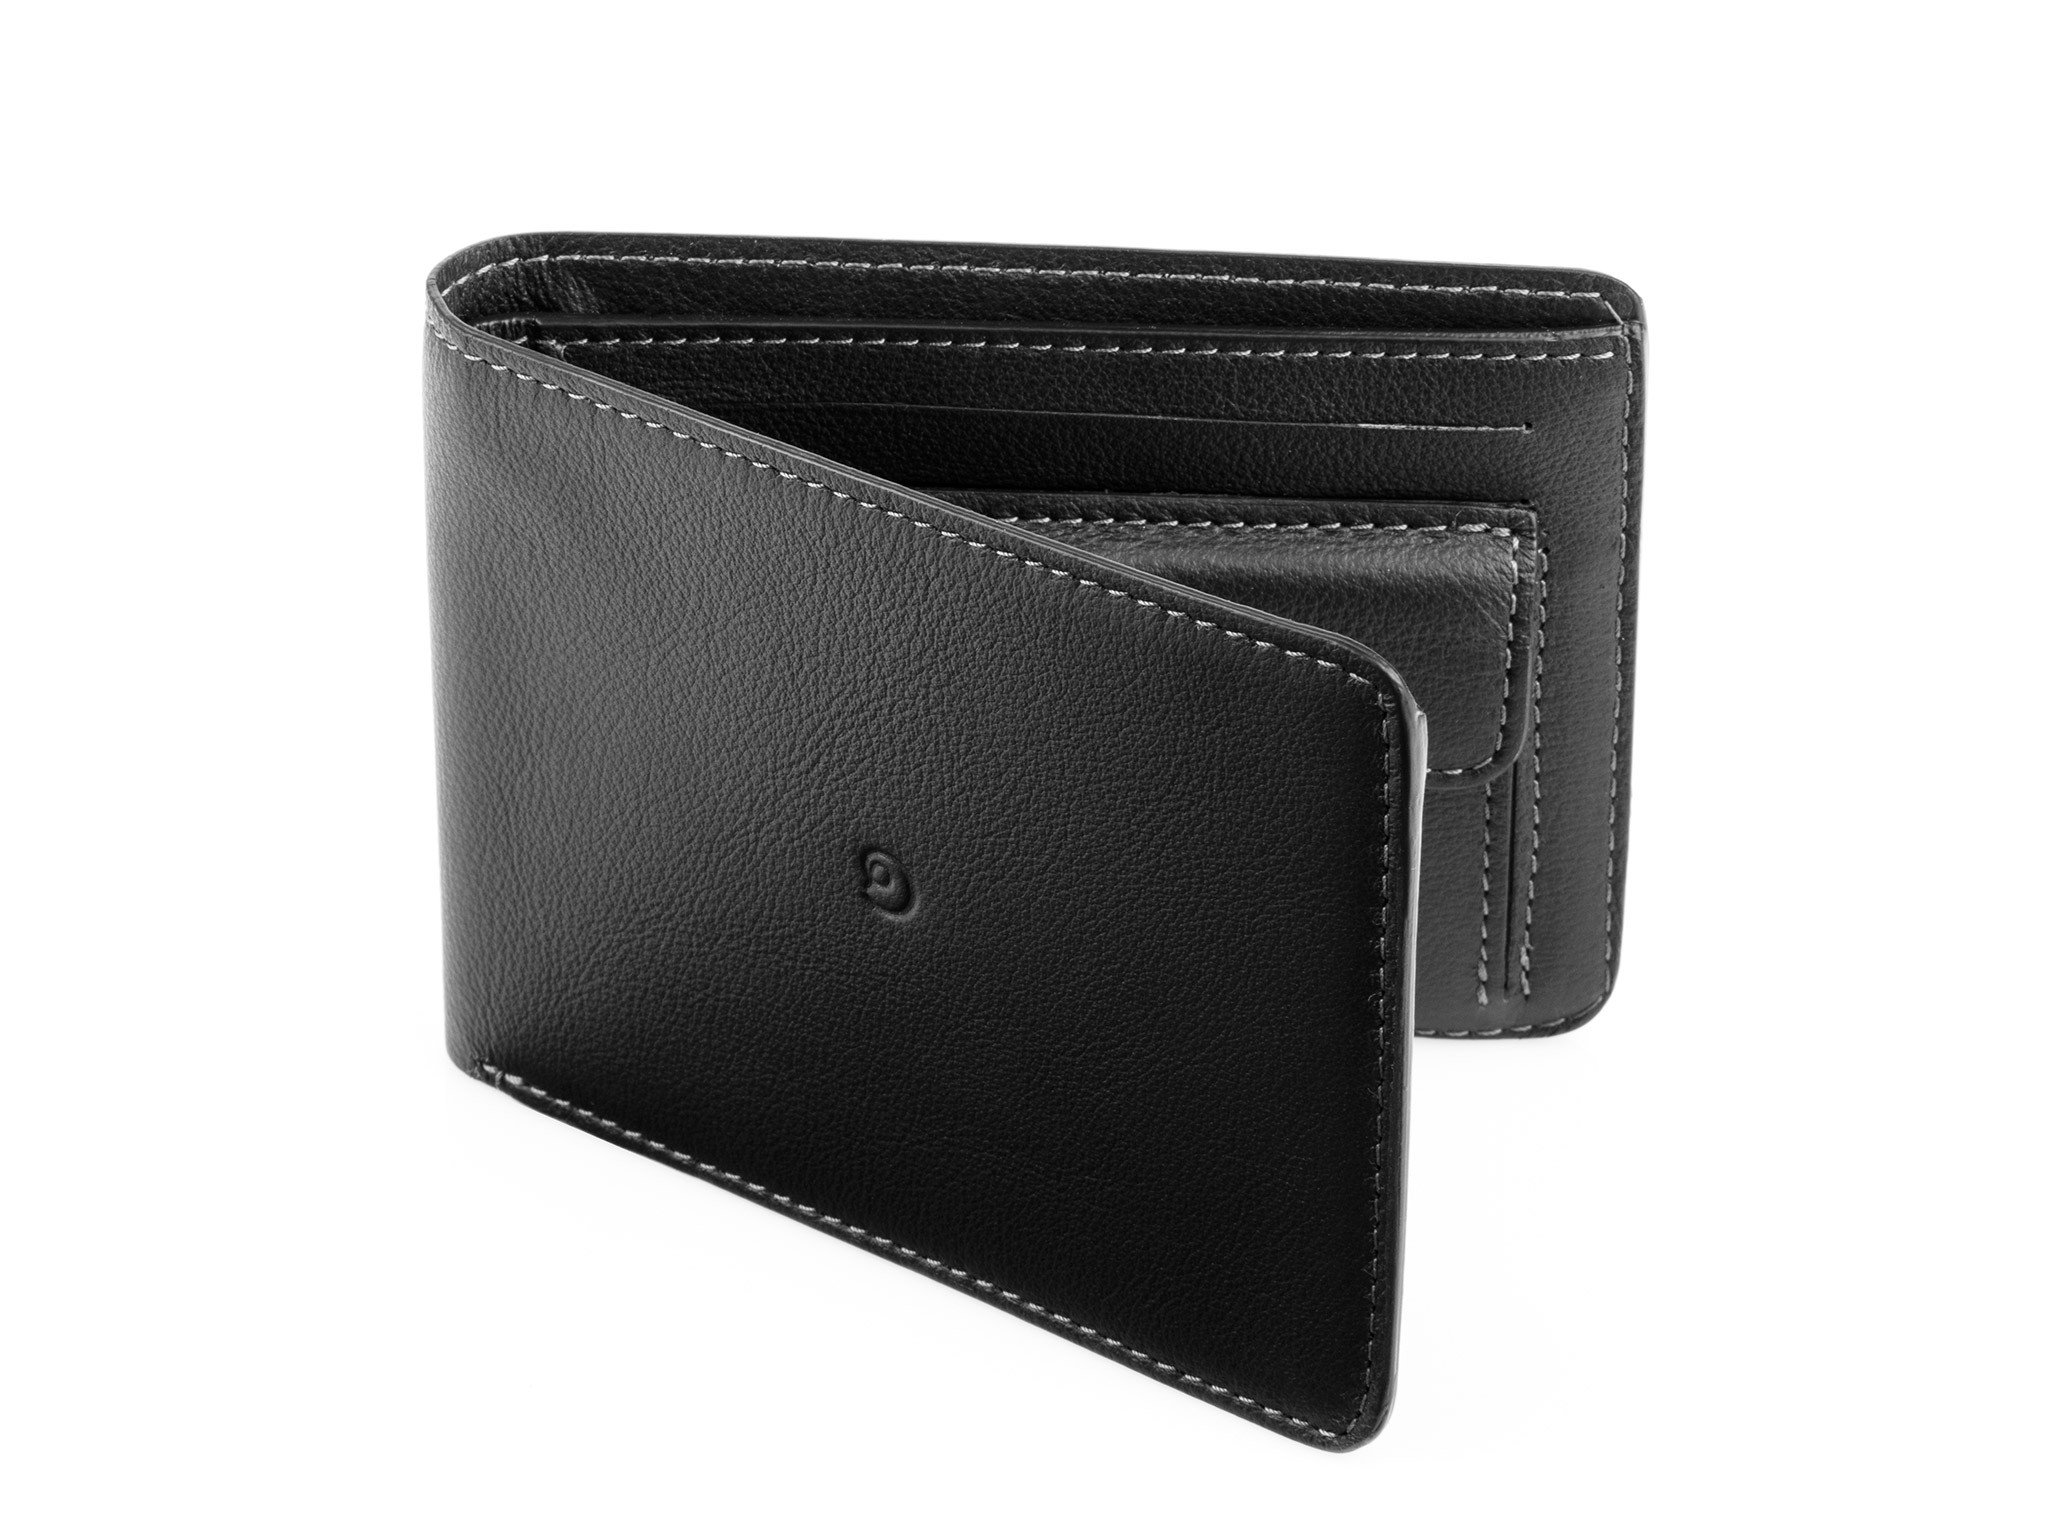 Leather coin wallet black by Danny P.